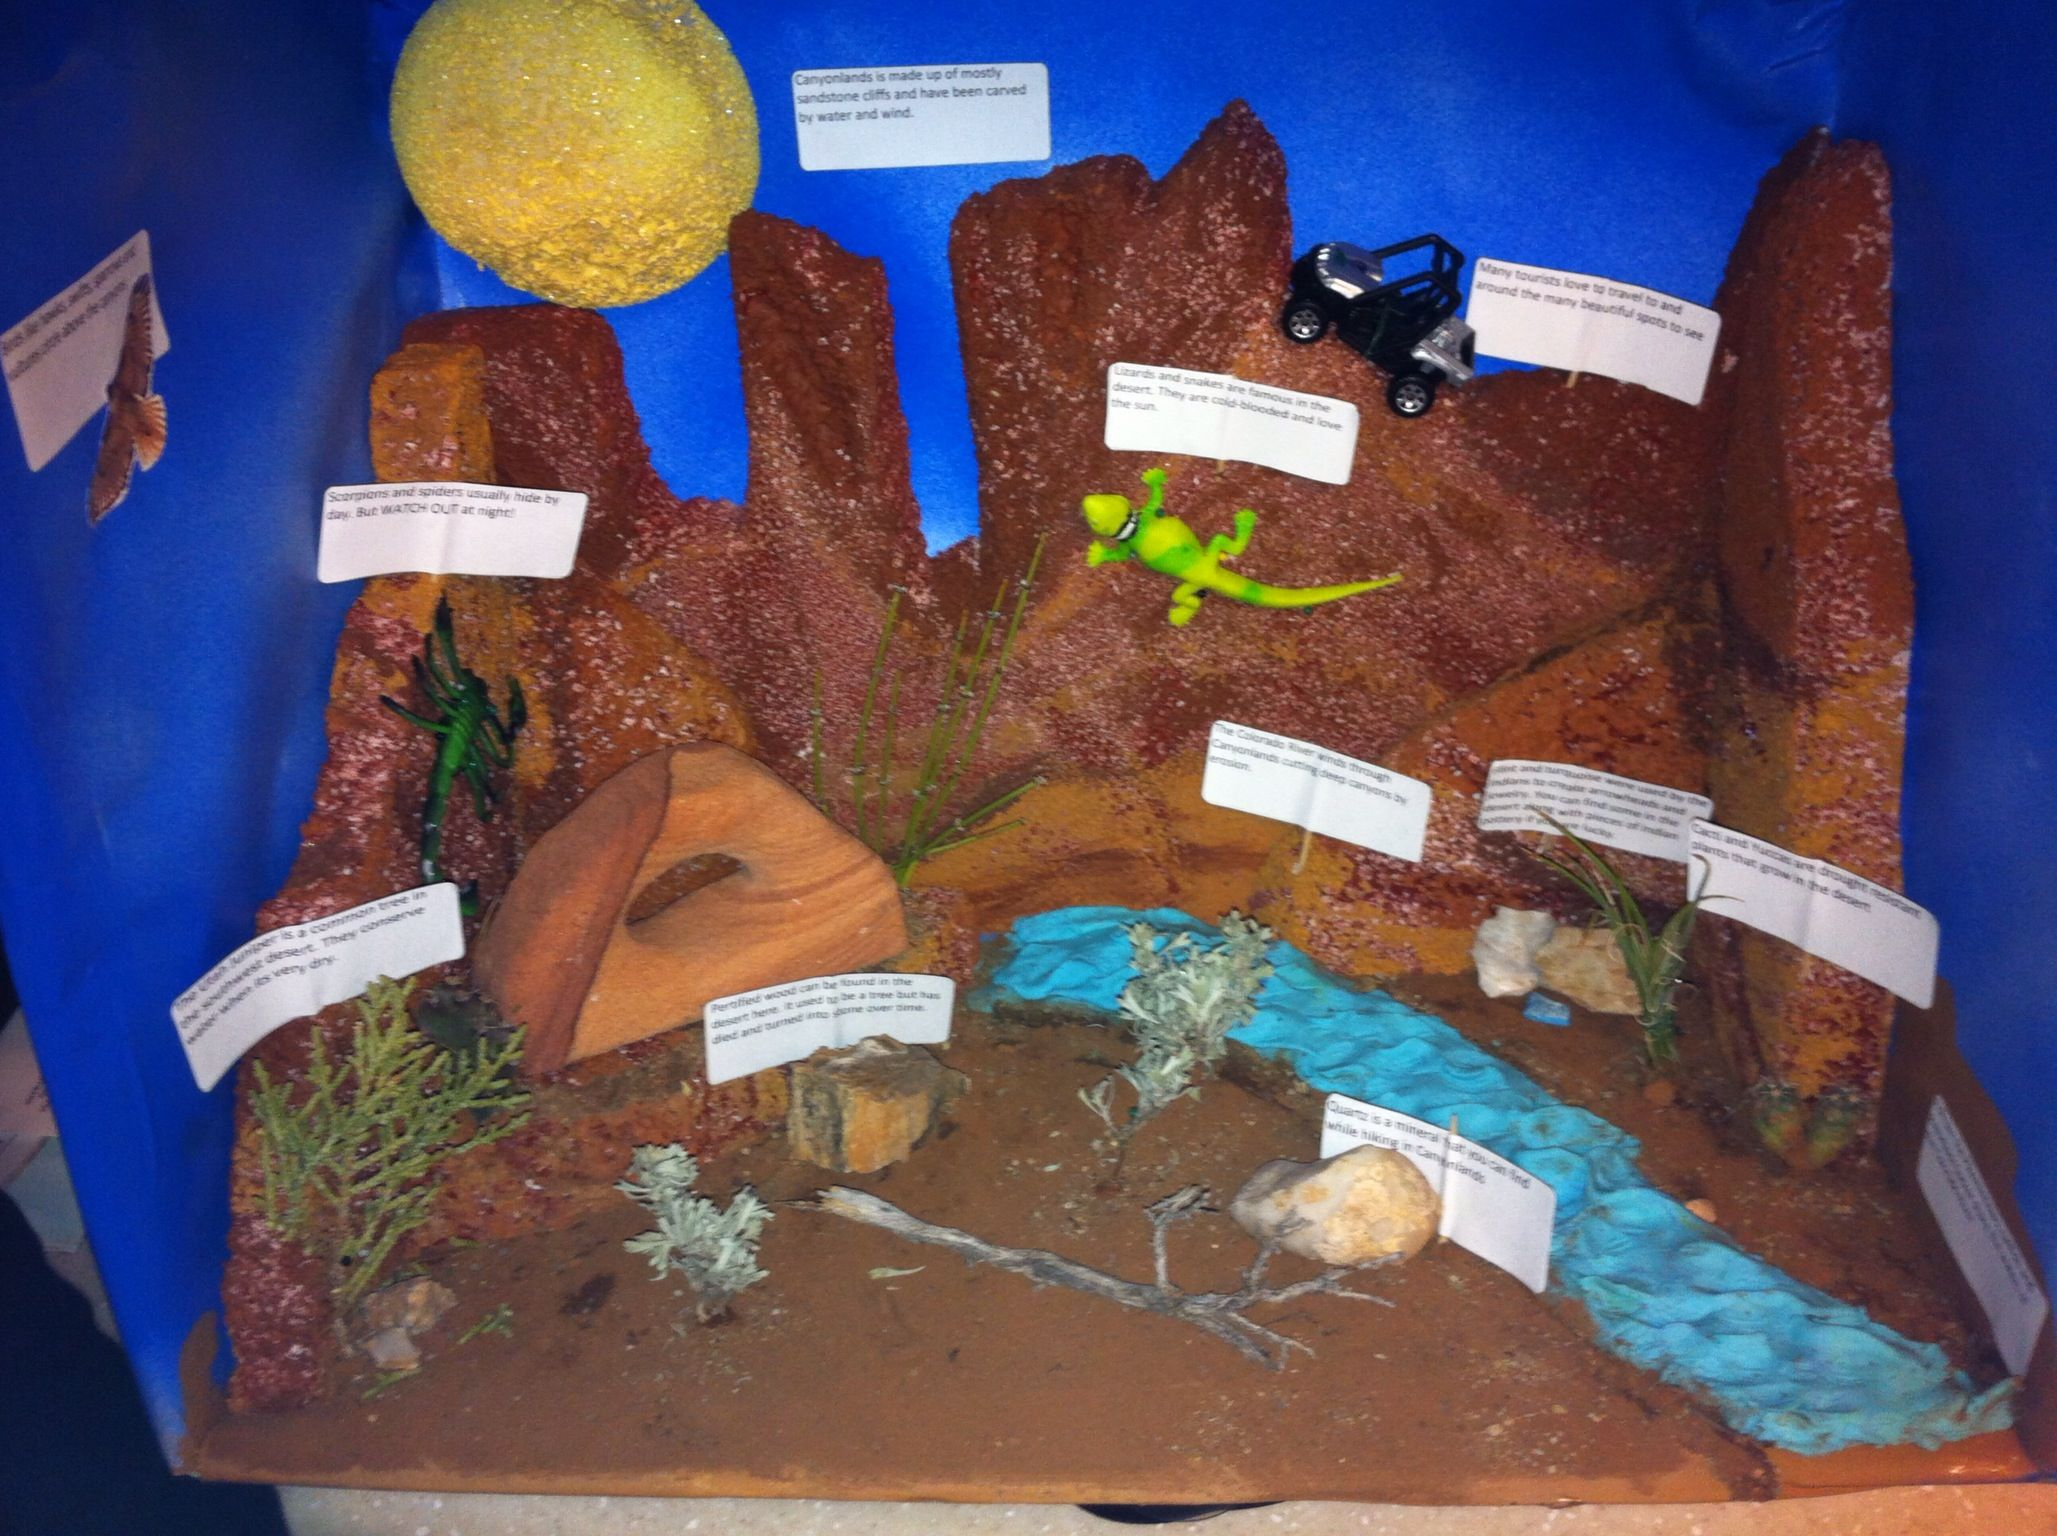 Canyonlands desert diorama school project For The Kids